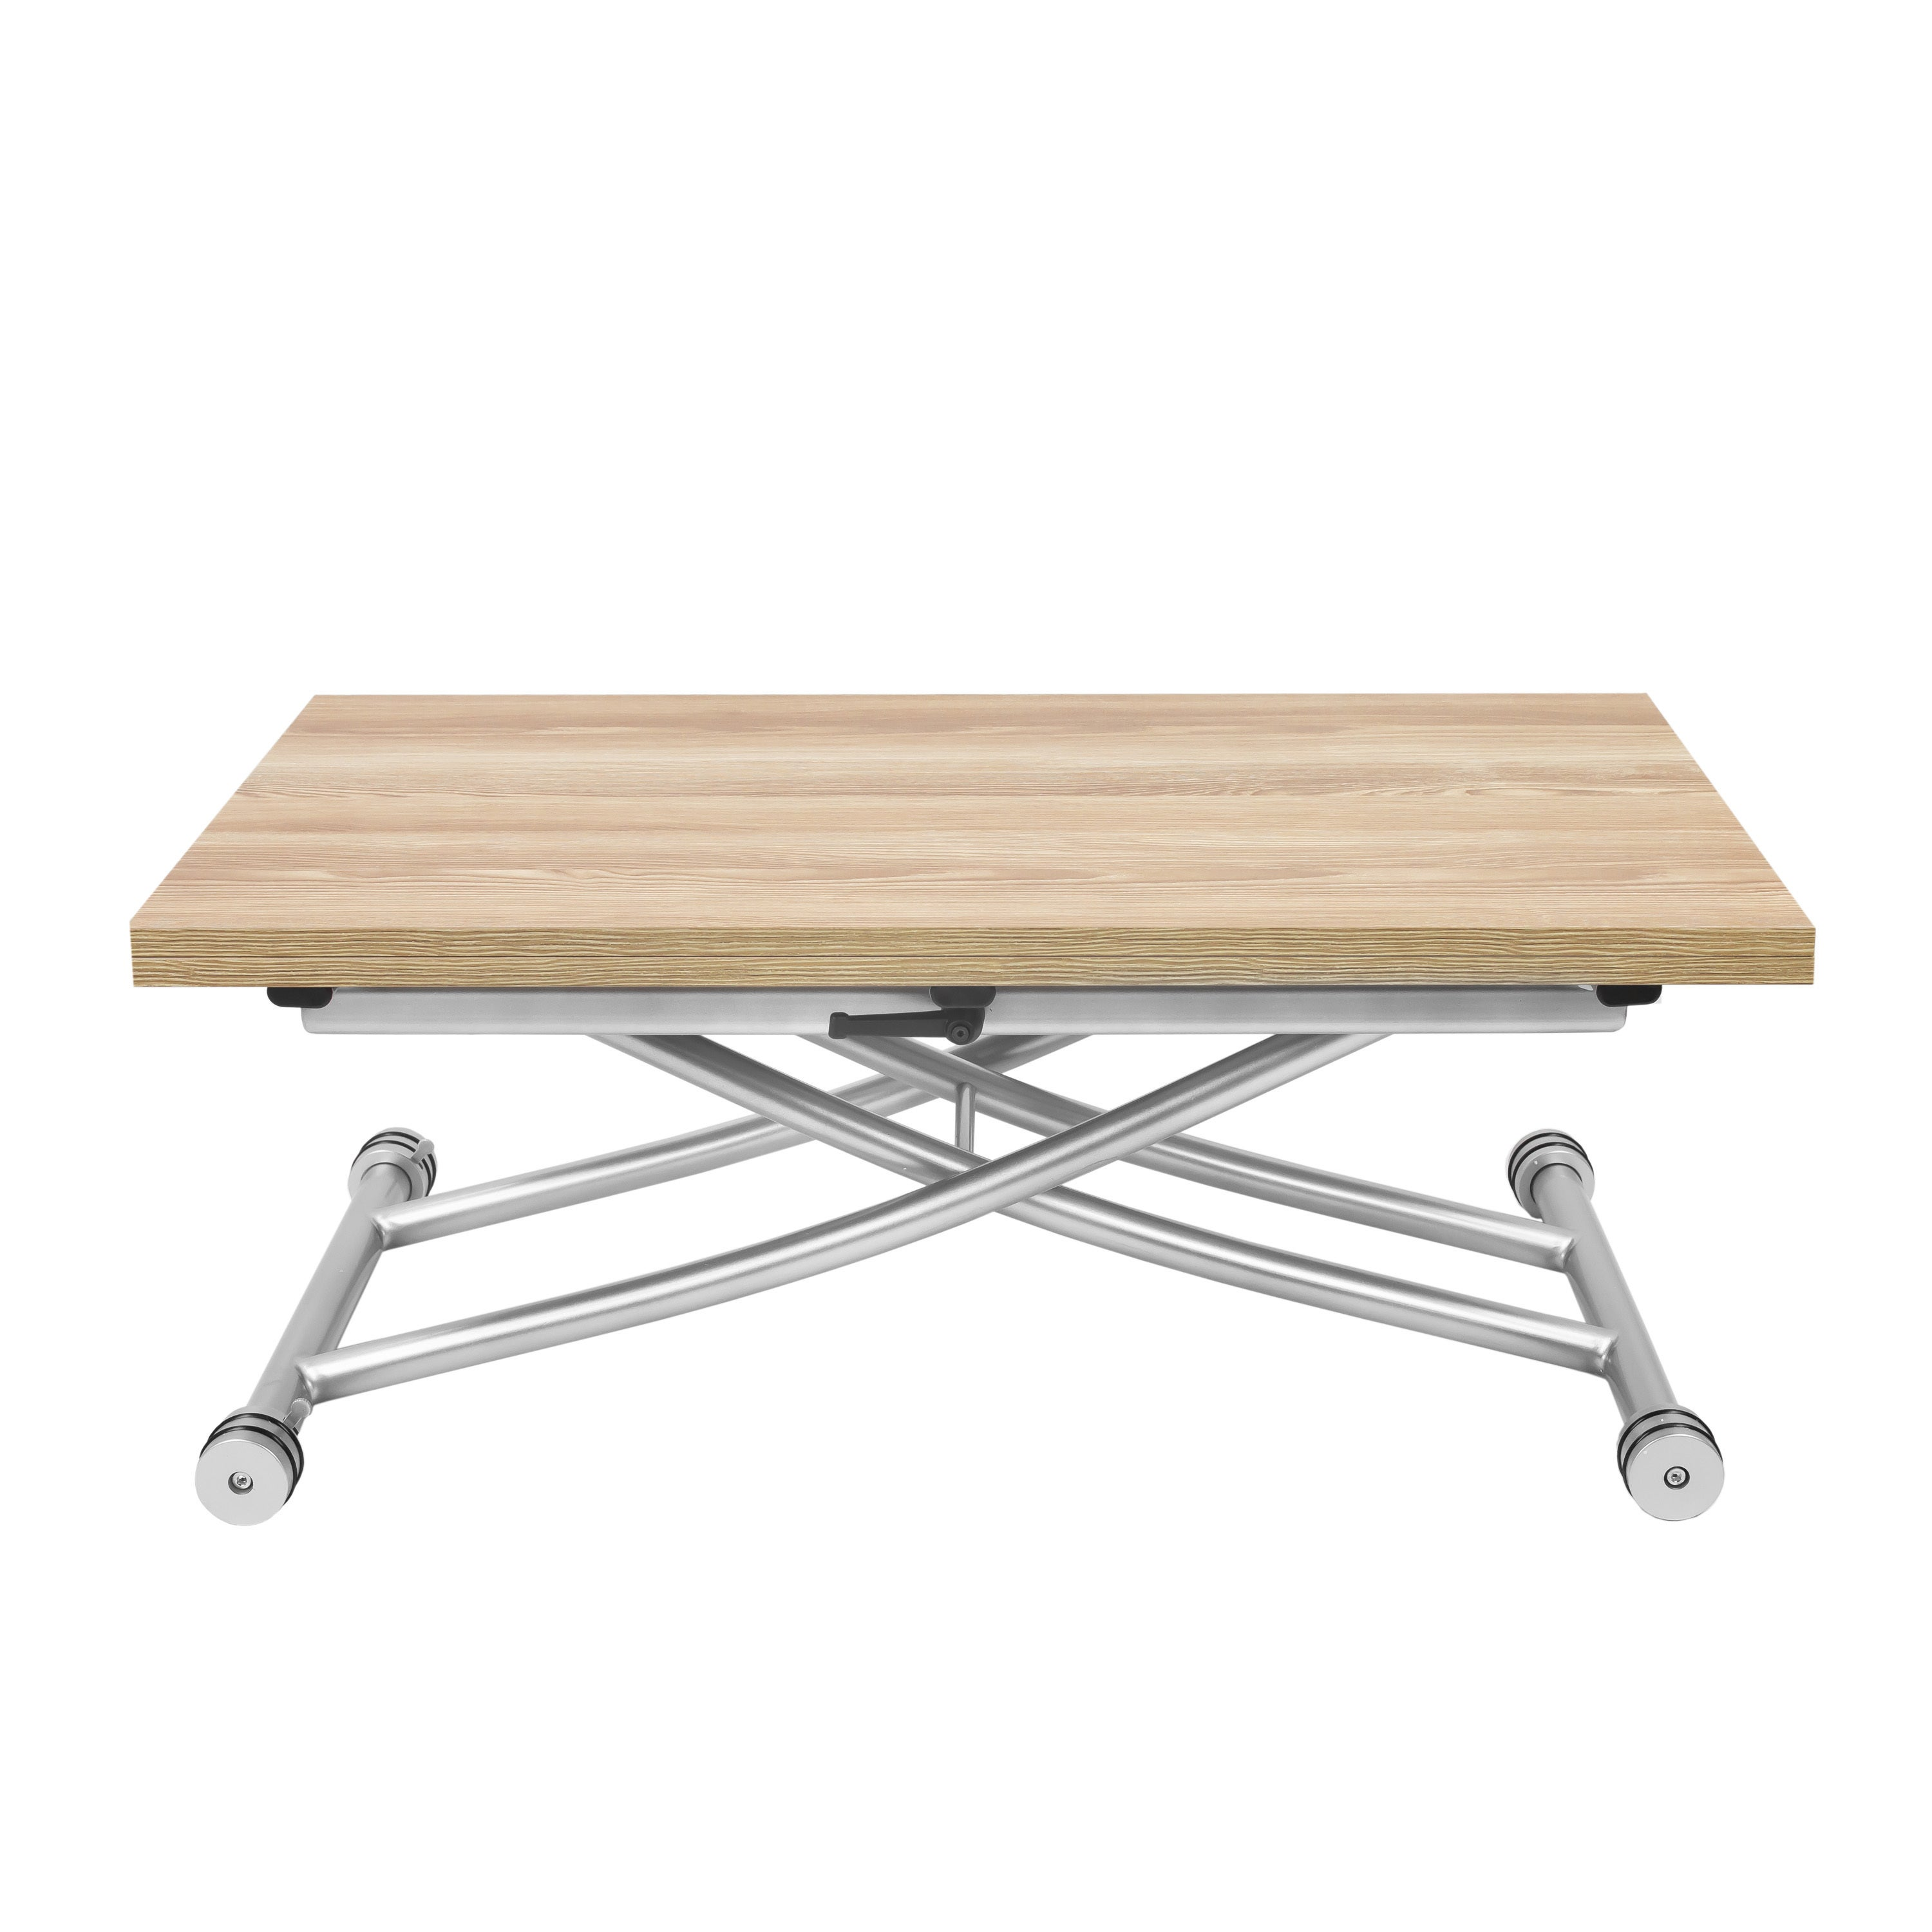 Transforming X Light Beige Finish Woodsteel Coffee And Dining Table